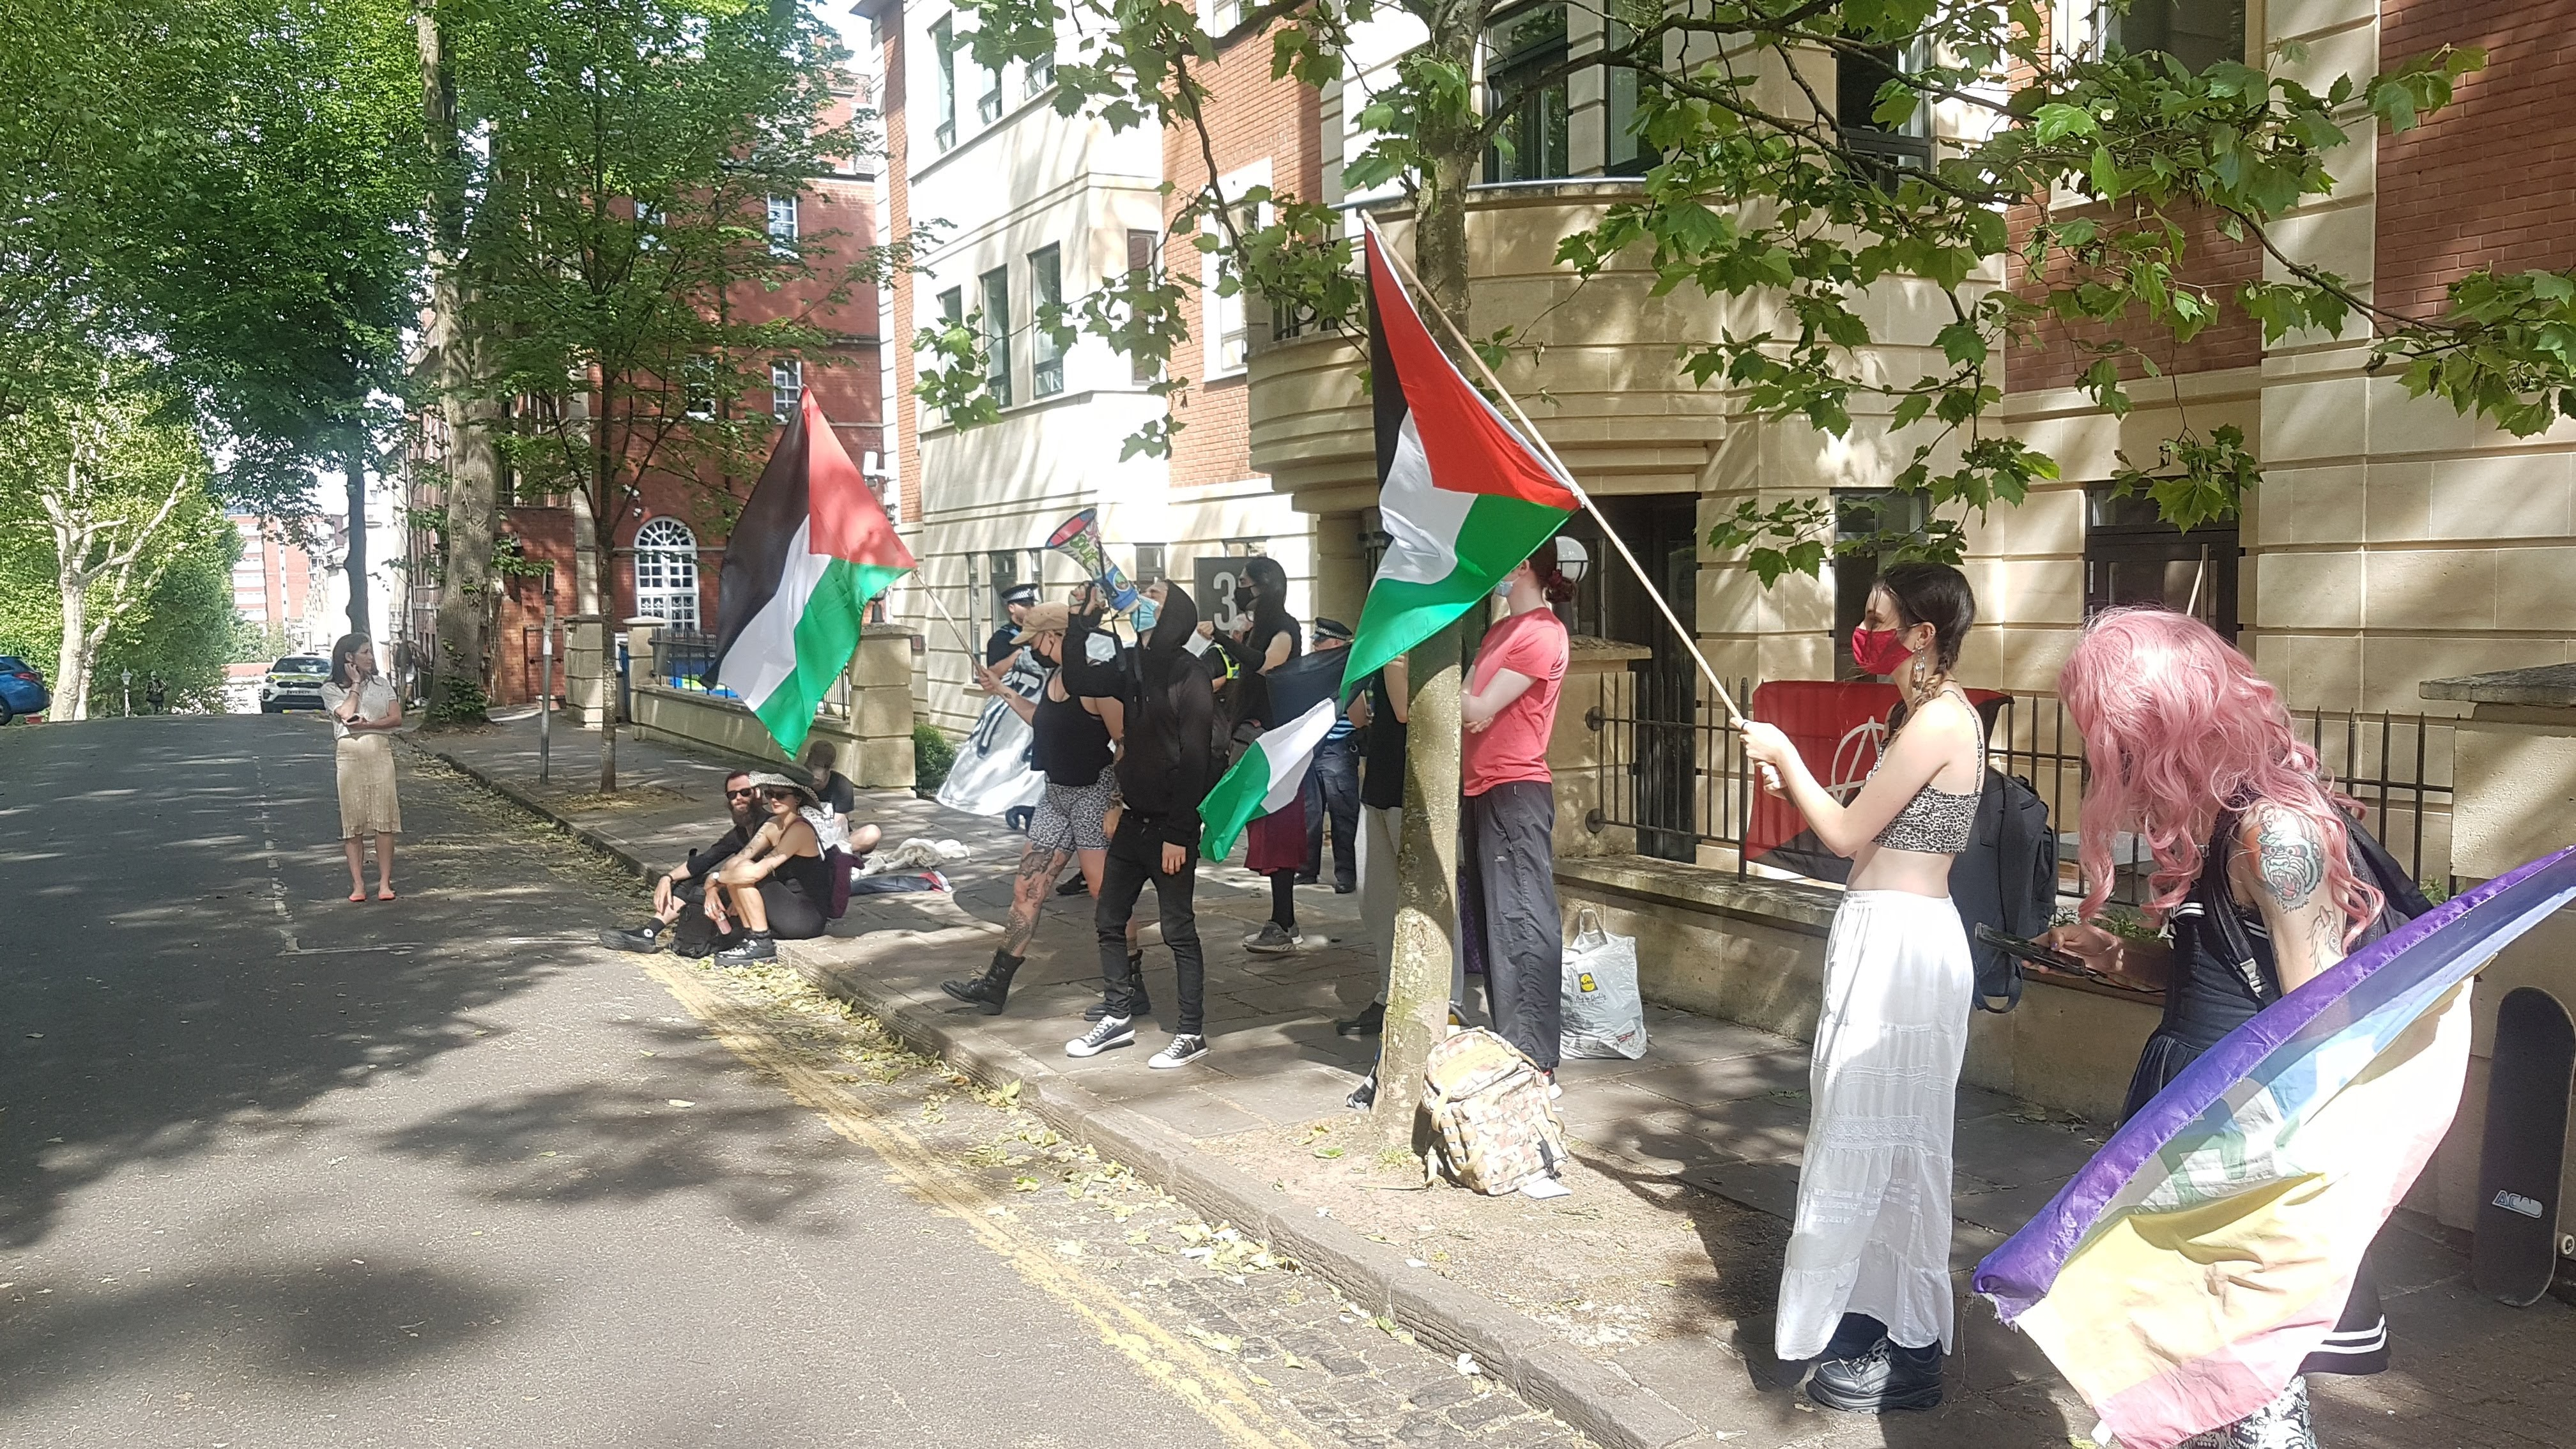 Thirteen protesters outside an office building.